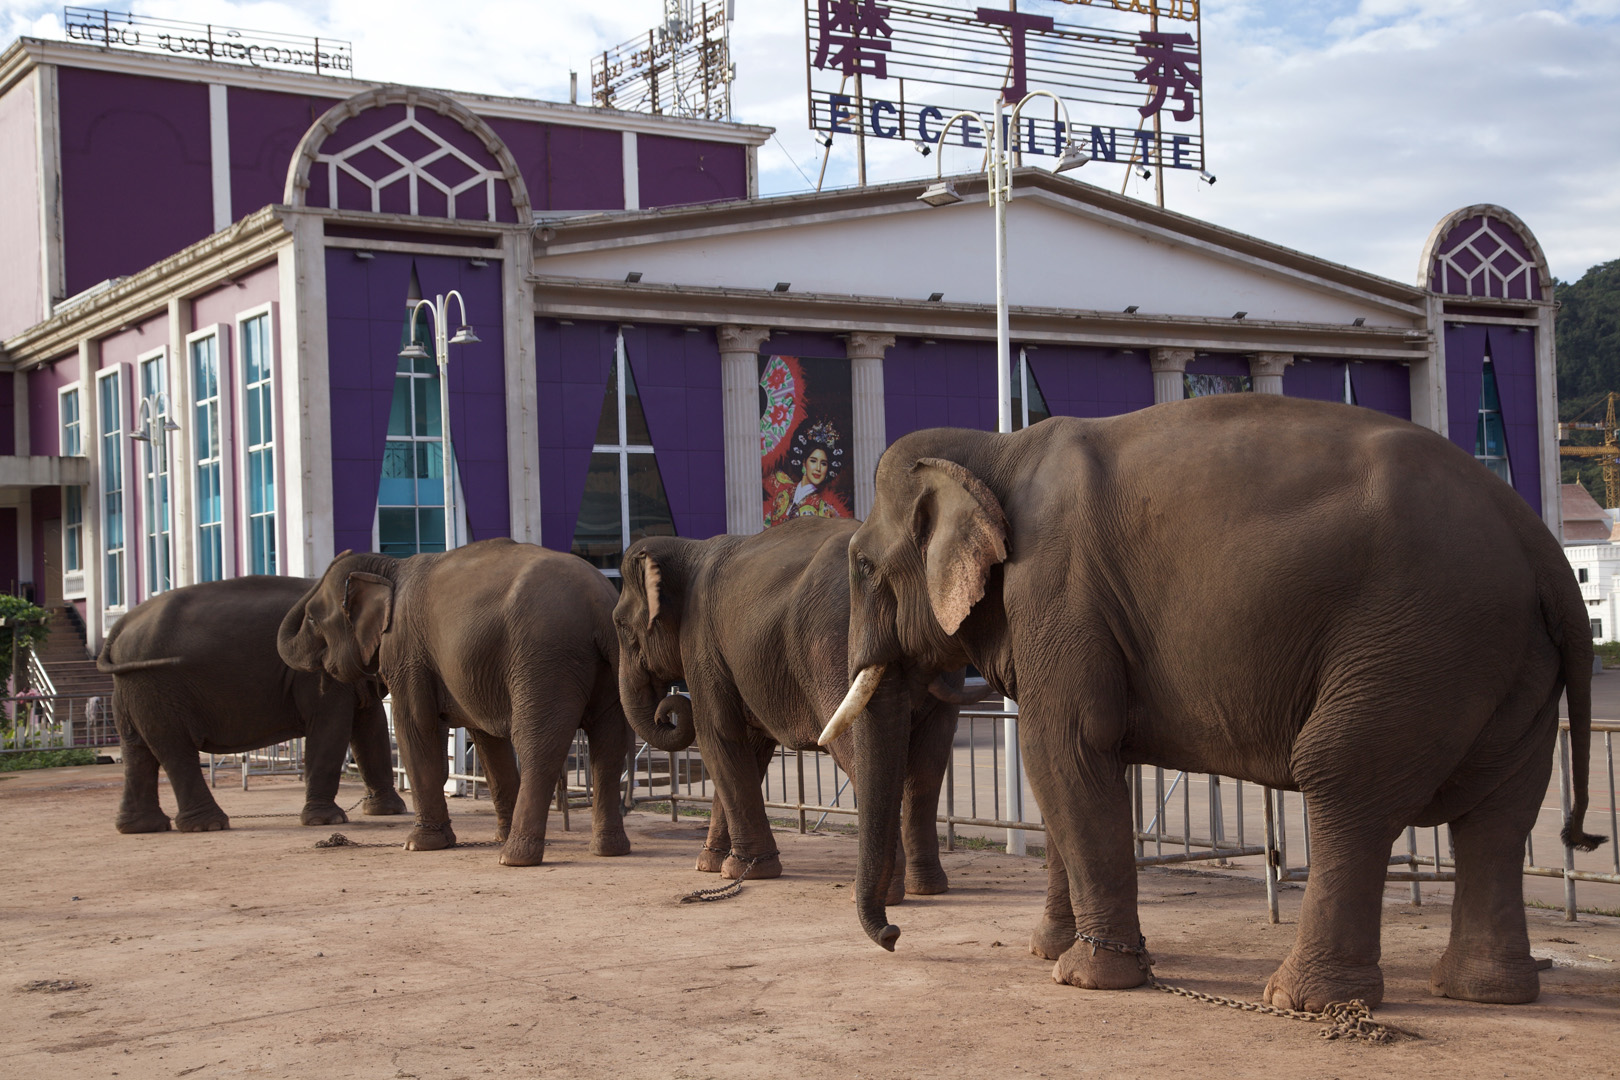 Elephants, lady boys and a Chinese audience